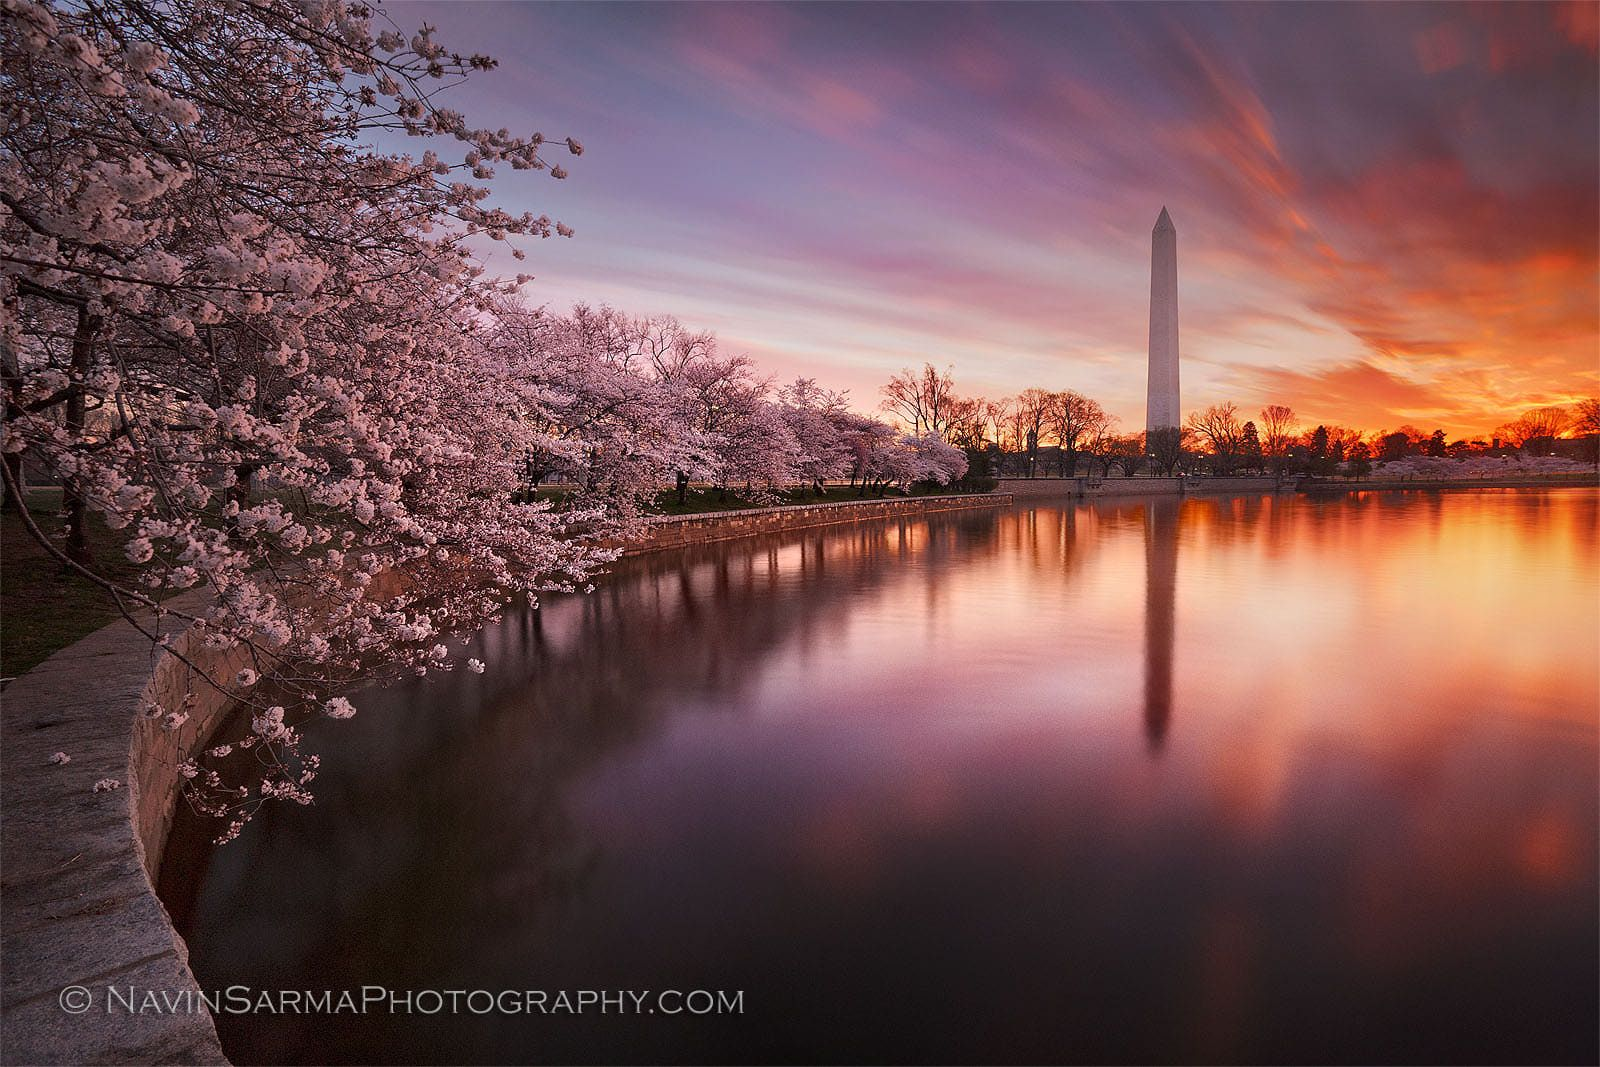 See A Map Of The Cherry Blossoms In Washington Dc Cherry Blossom Festival Dc Cherry Blossom Dc Cherry Blossom Festival